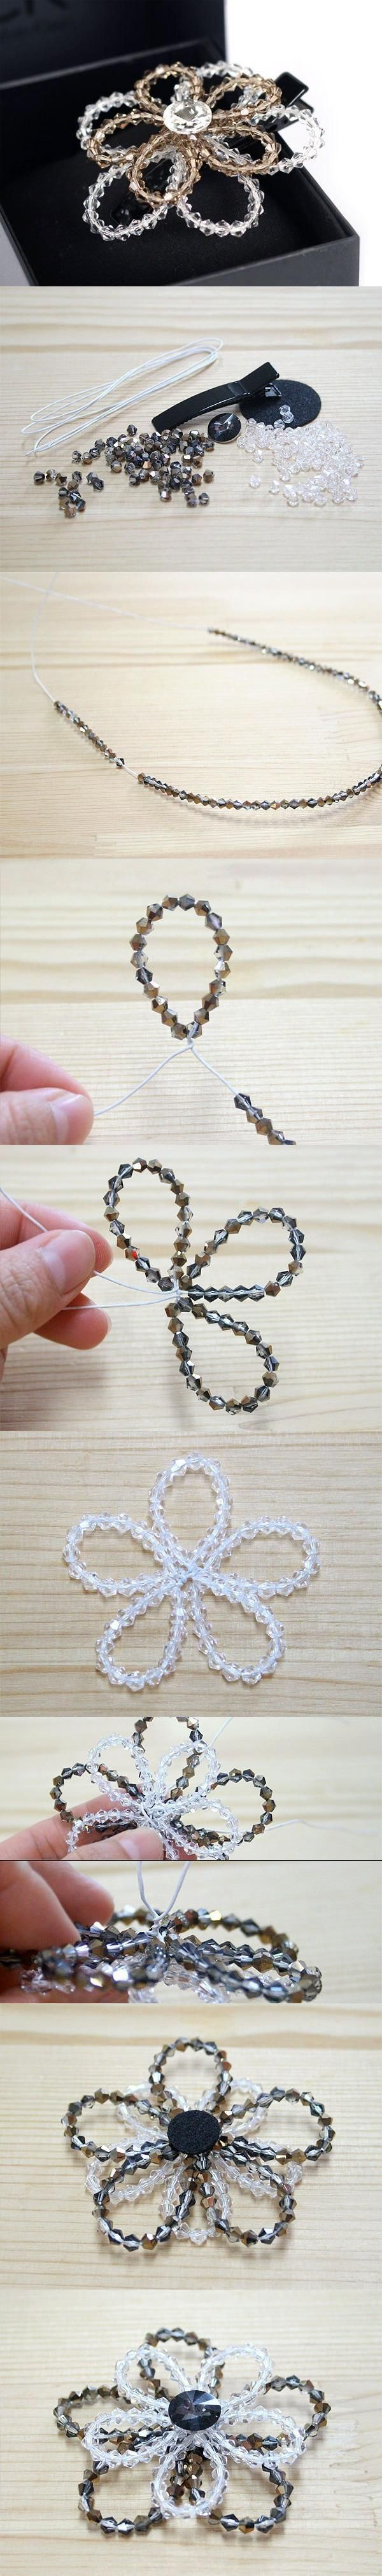 DIY Beaded Crystal Flower